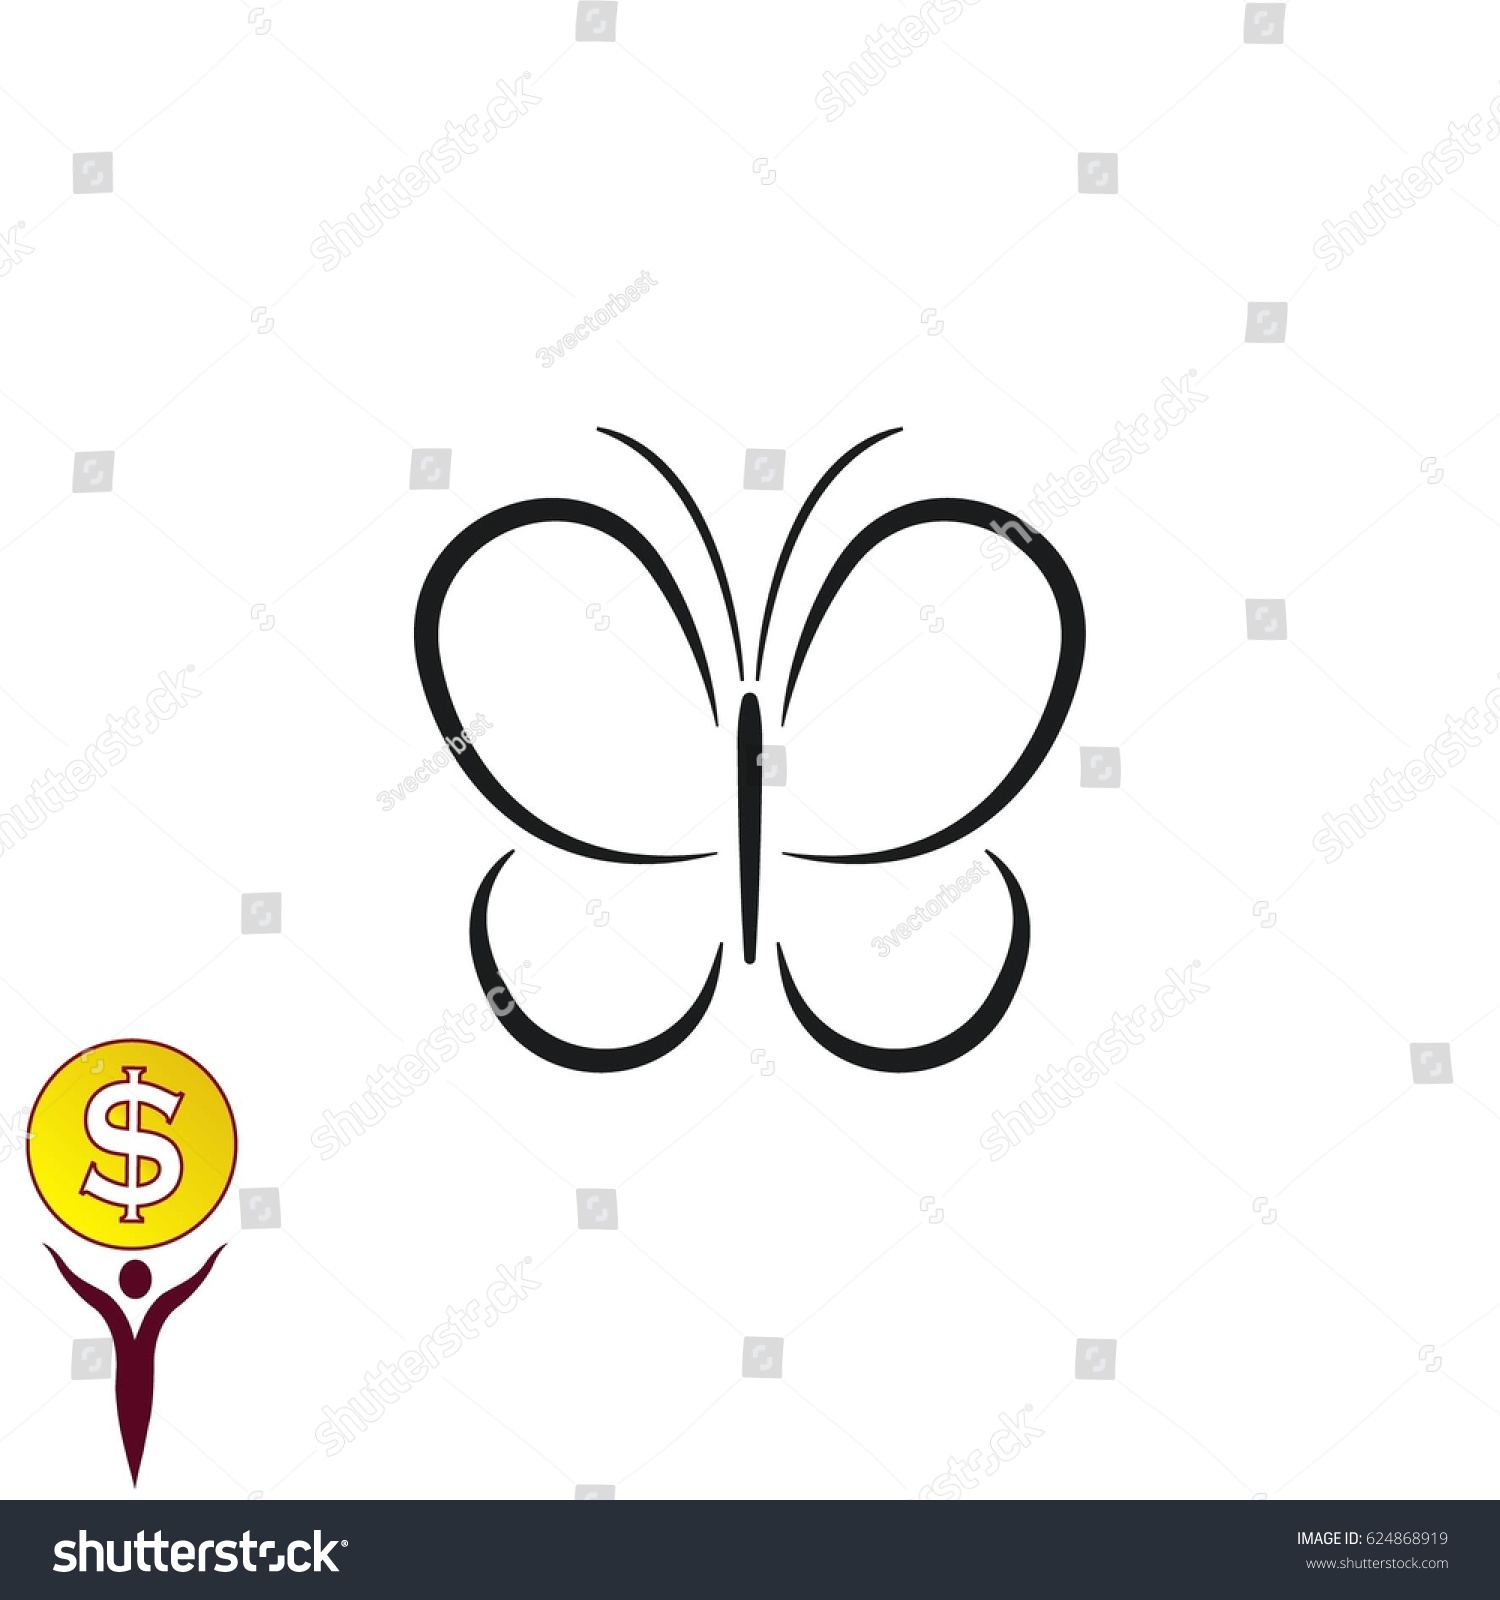 Butterfly icon vector illustration stock vector 624868919 butterfly icon vector illustration biocorpaavc Image collections